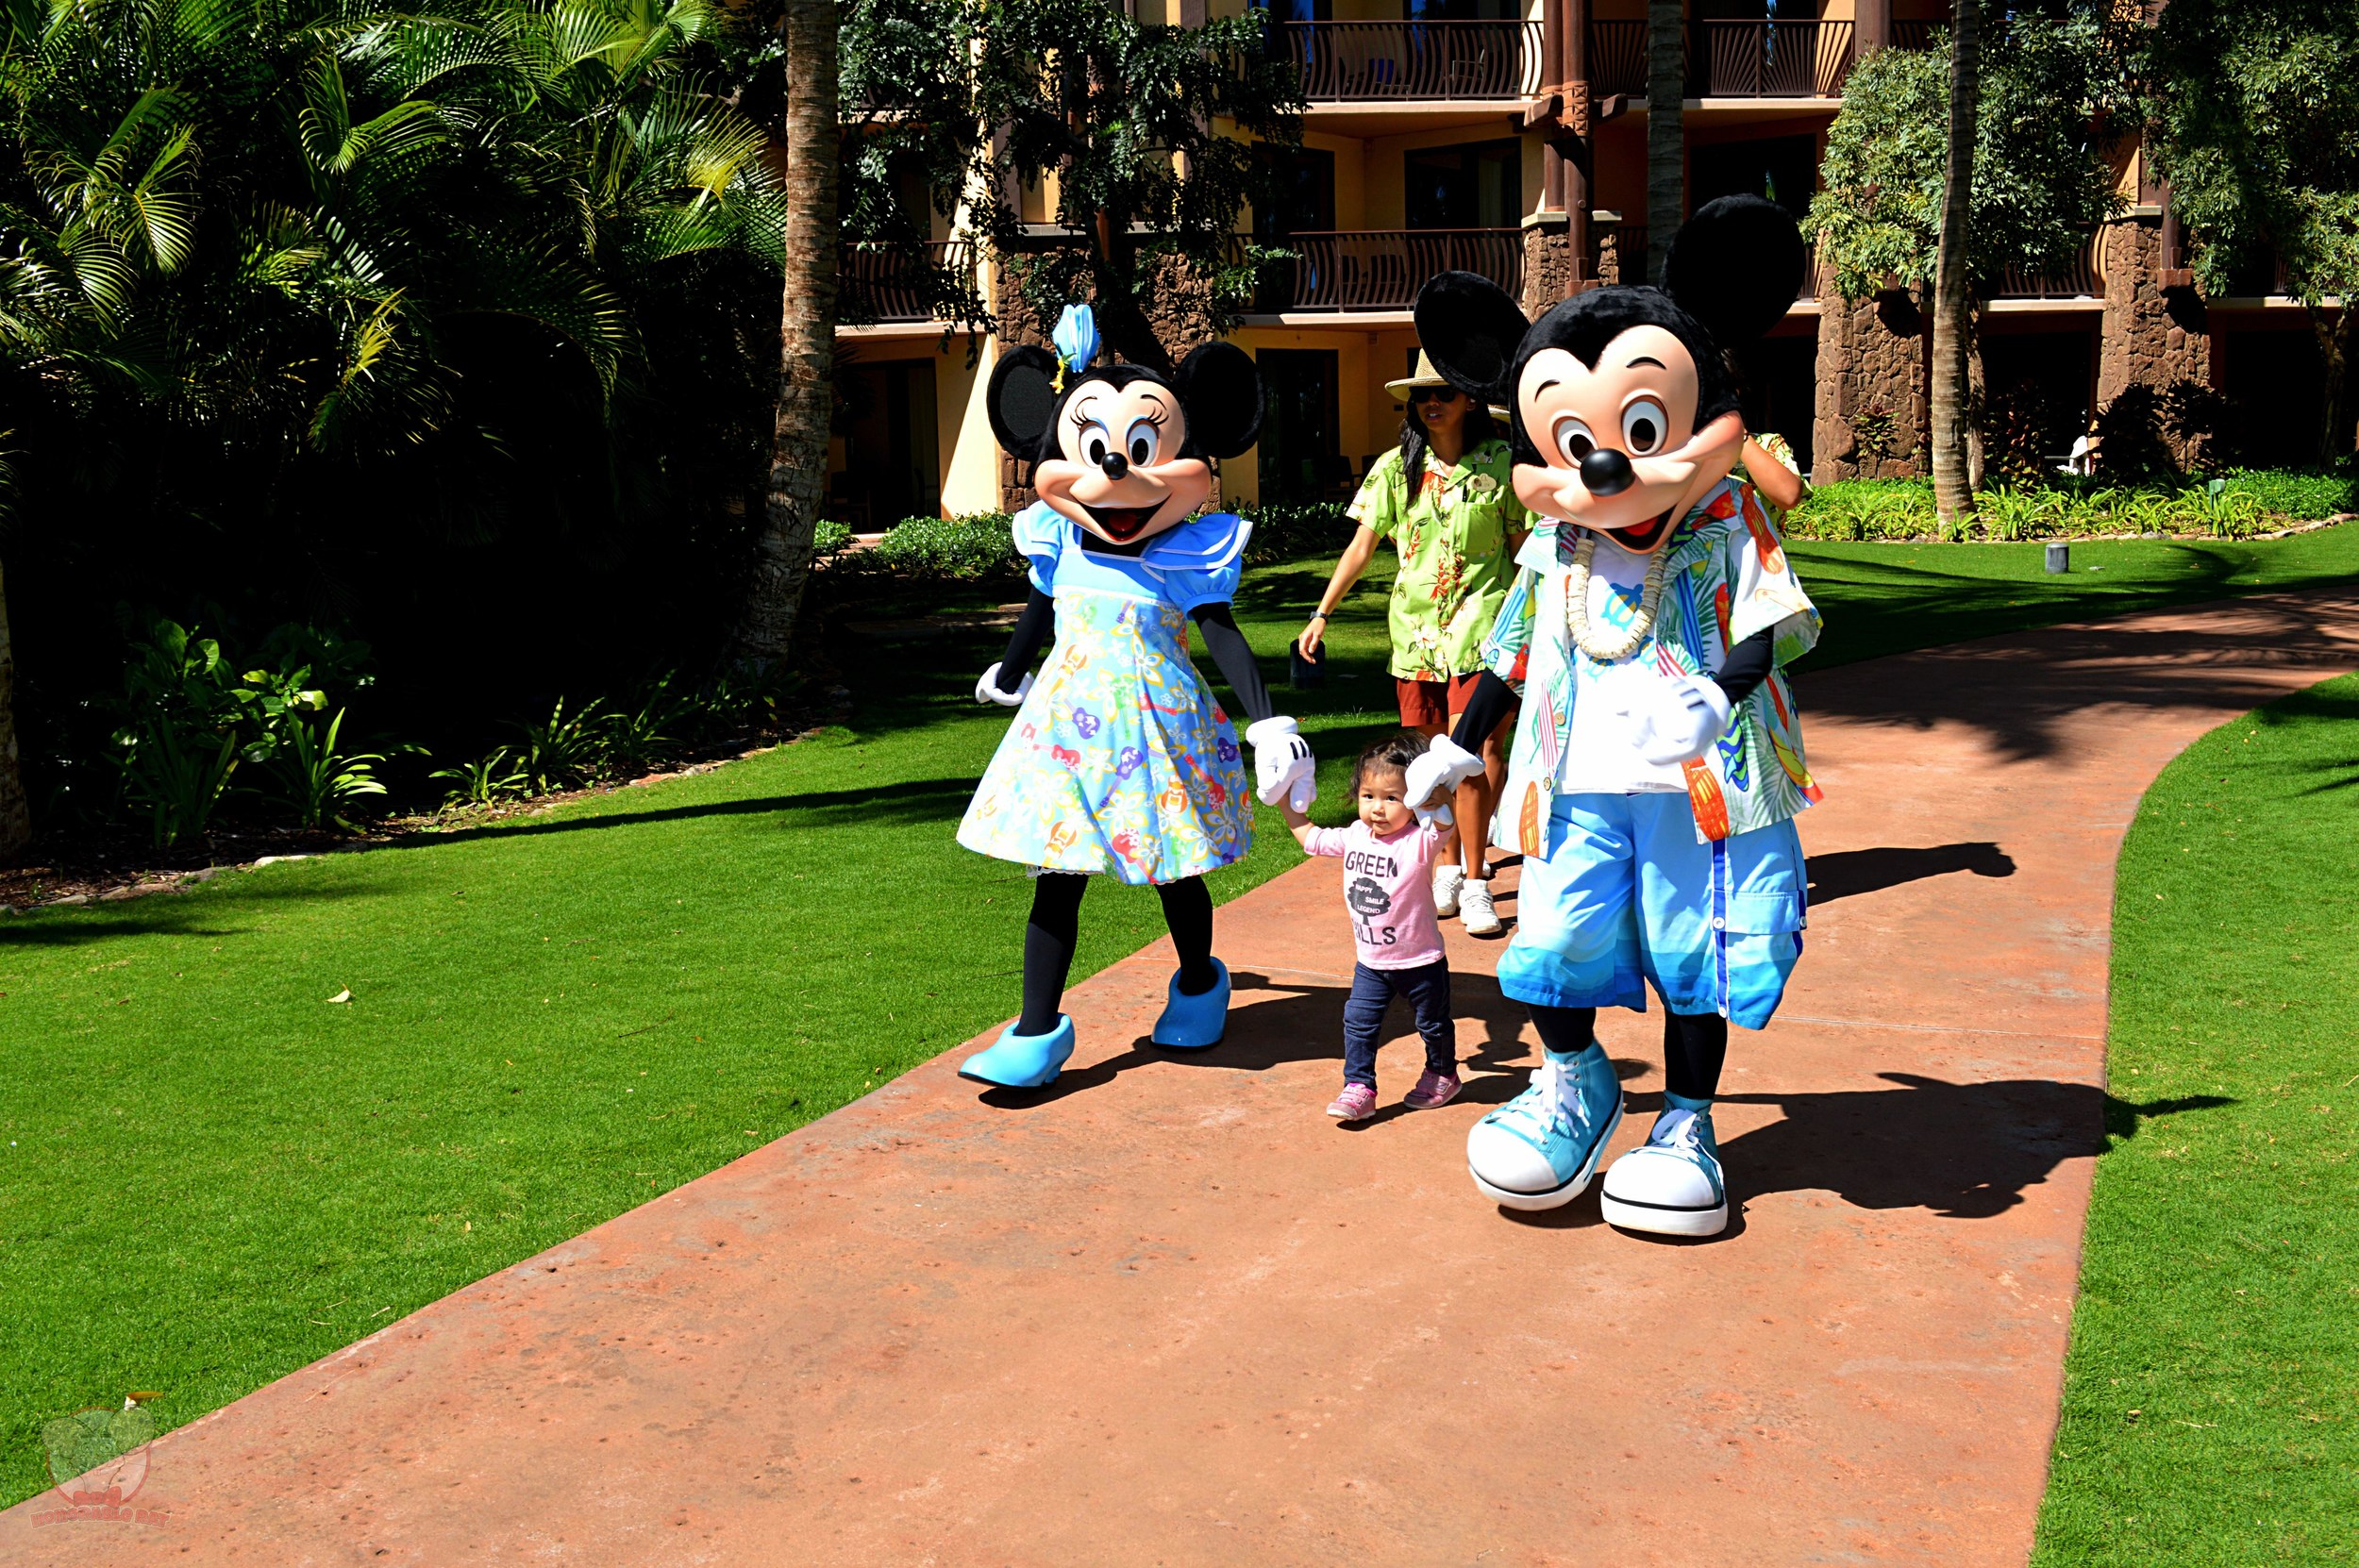 Walking hand in hand with Mickey and Minnie